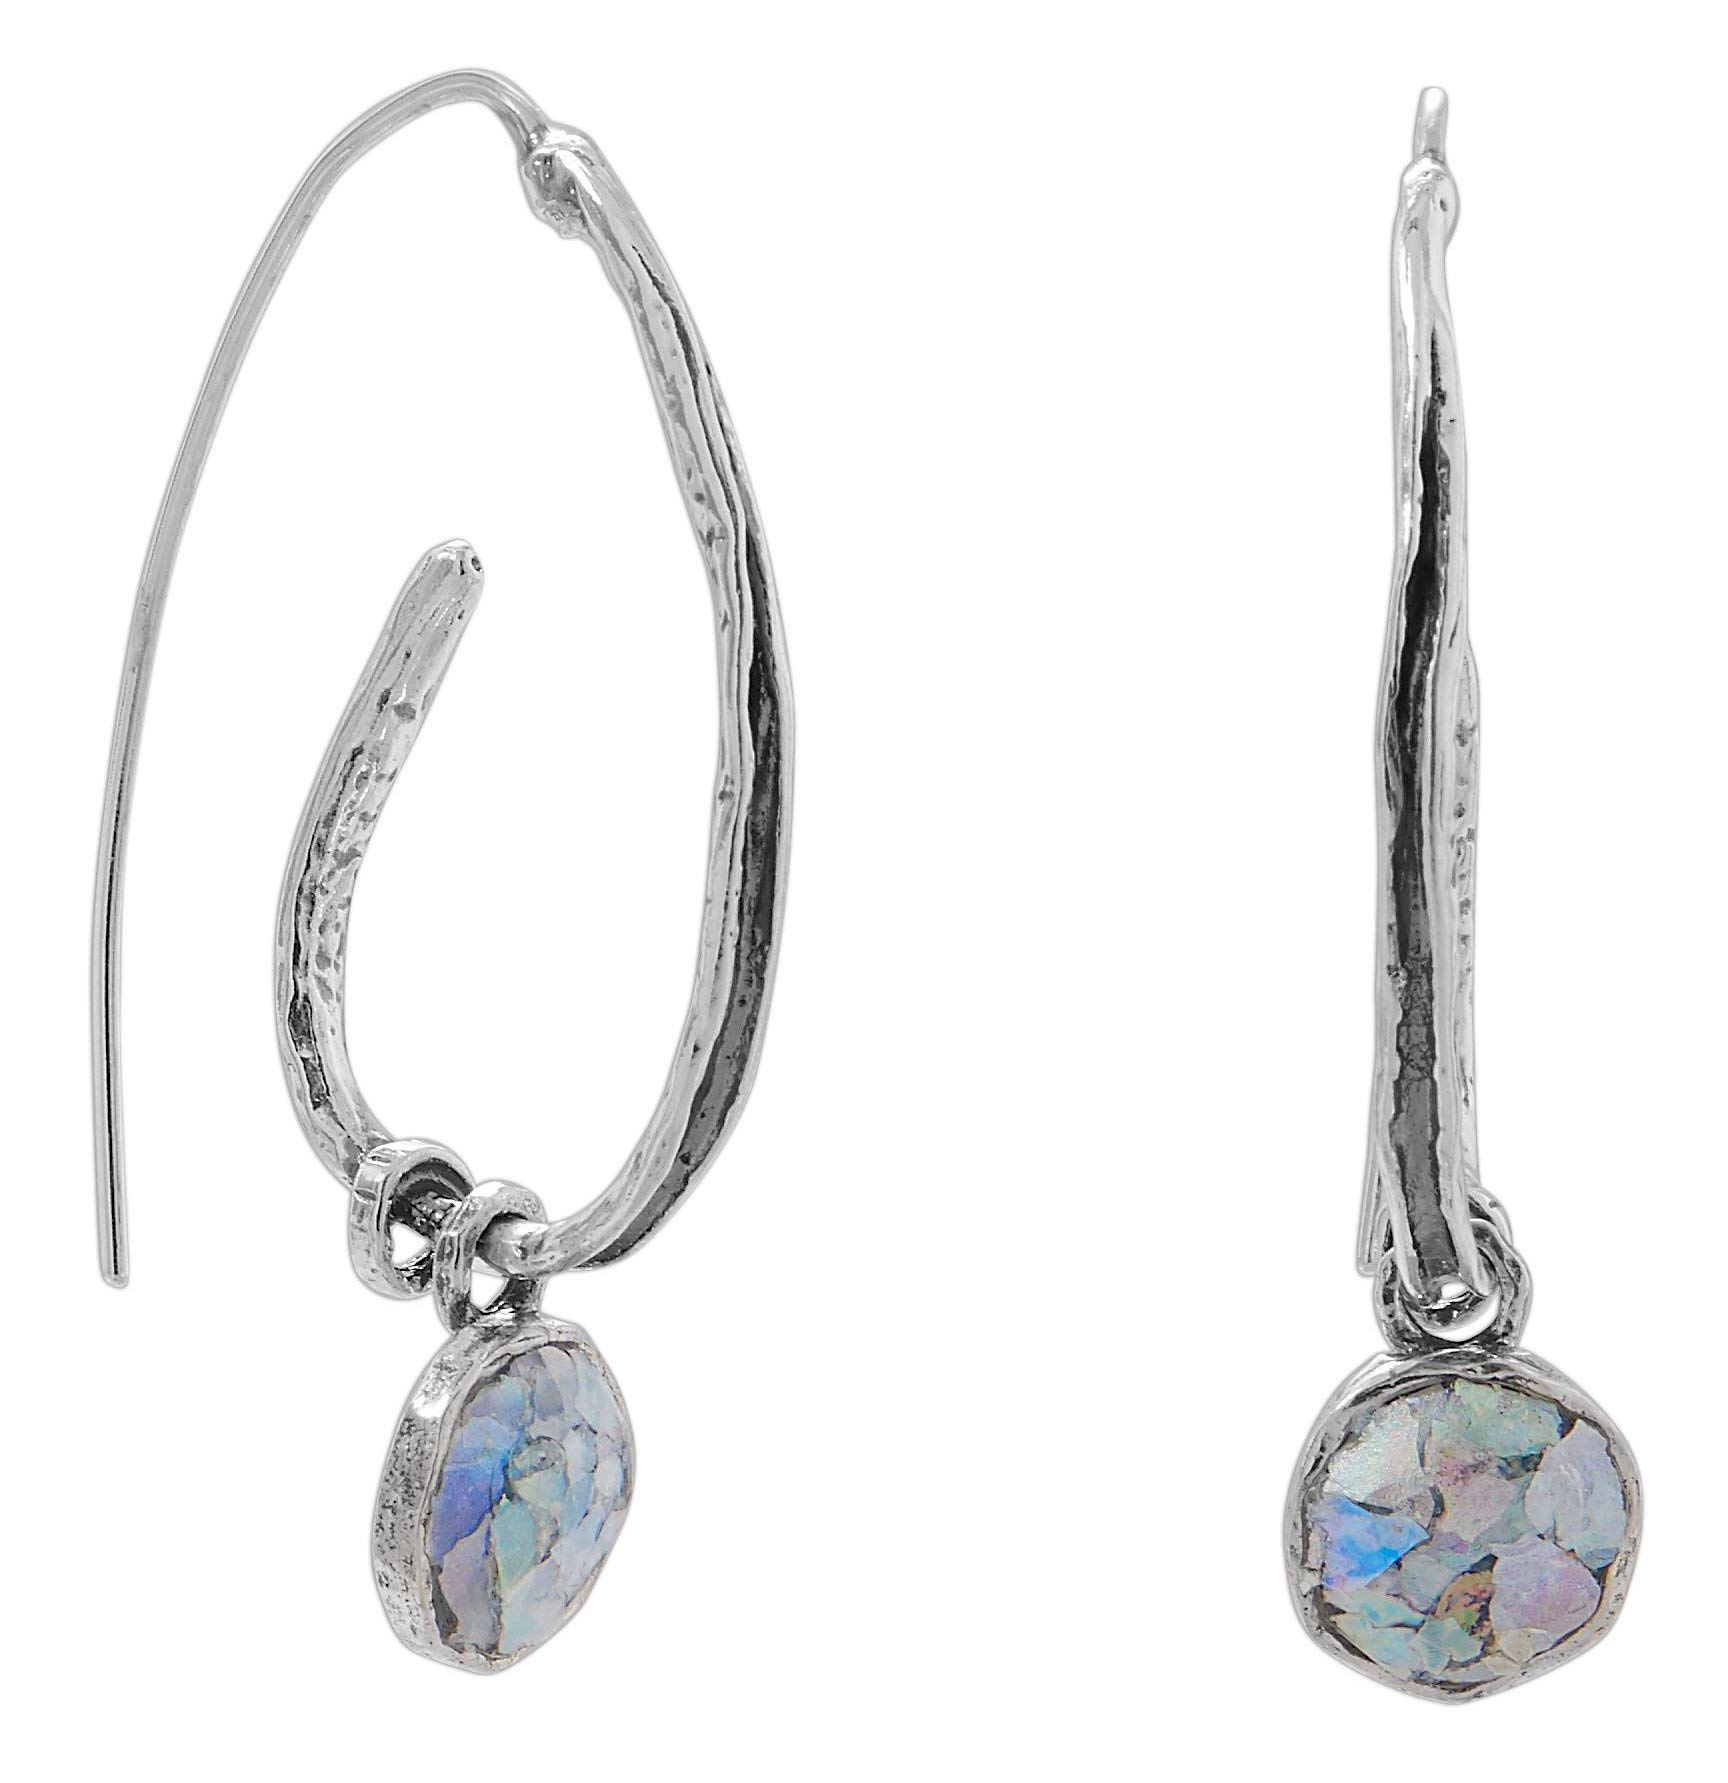 47.5mm Oxidized Sterling Silver Coil Design Earrings with Ancient Roman Glass Drop Charm